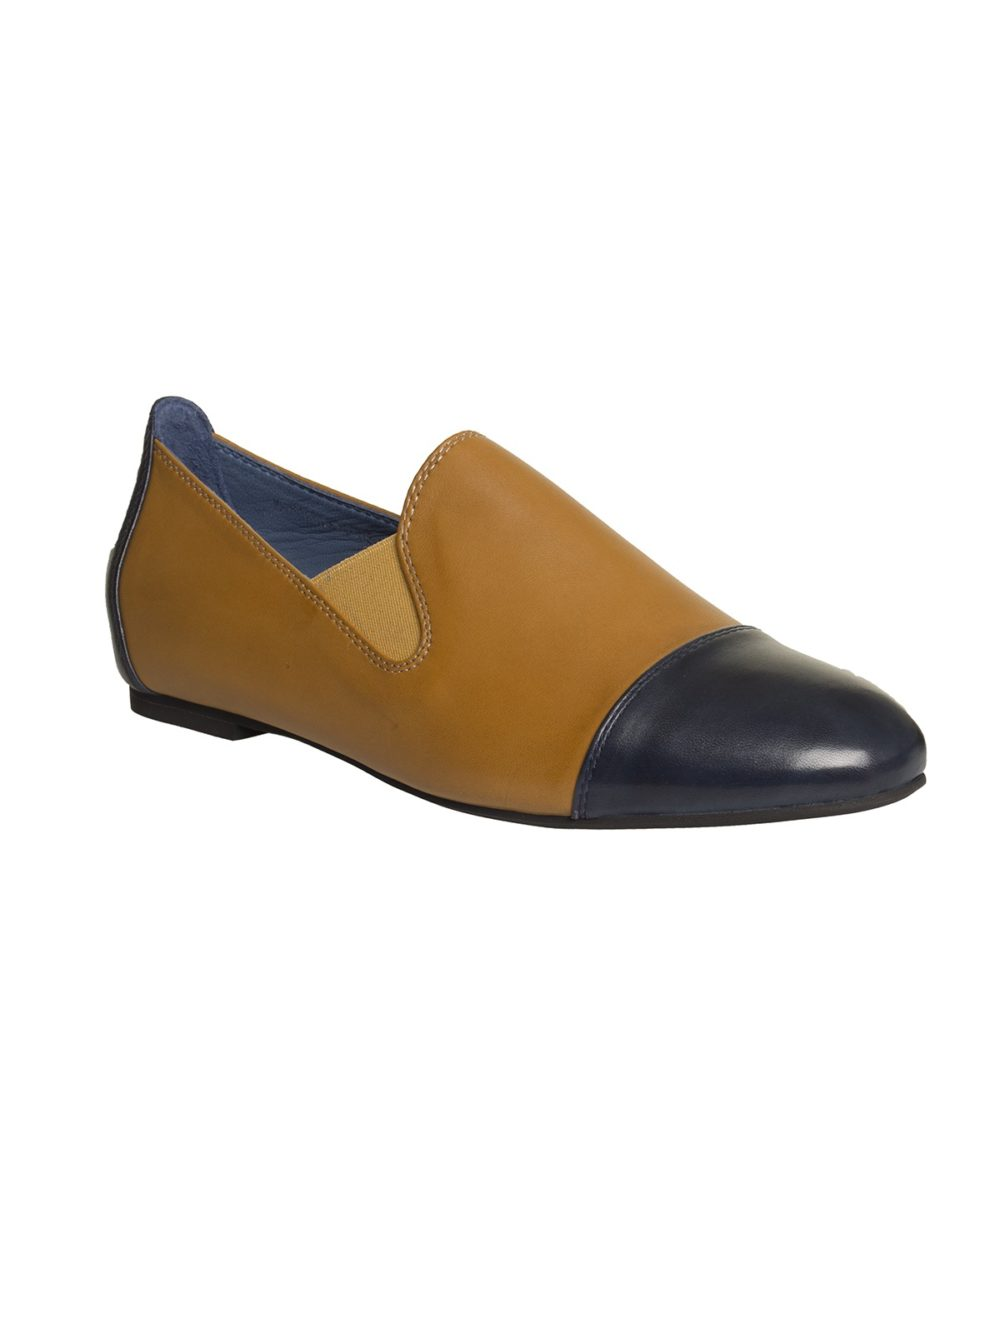 Herry Shoe Regarde le Ciel Katie Kerr Women's Shoes